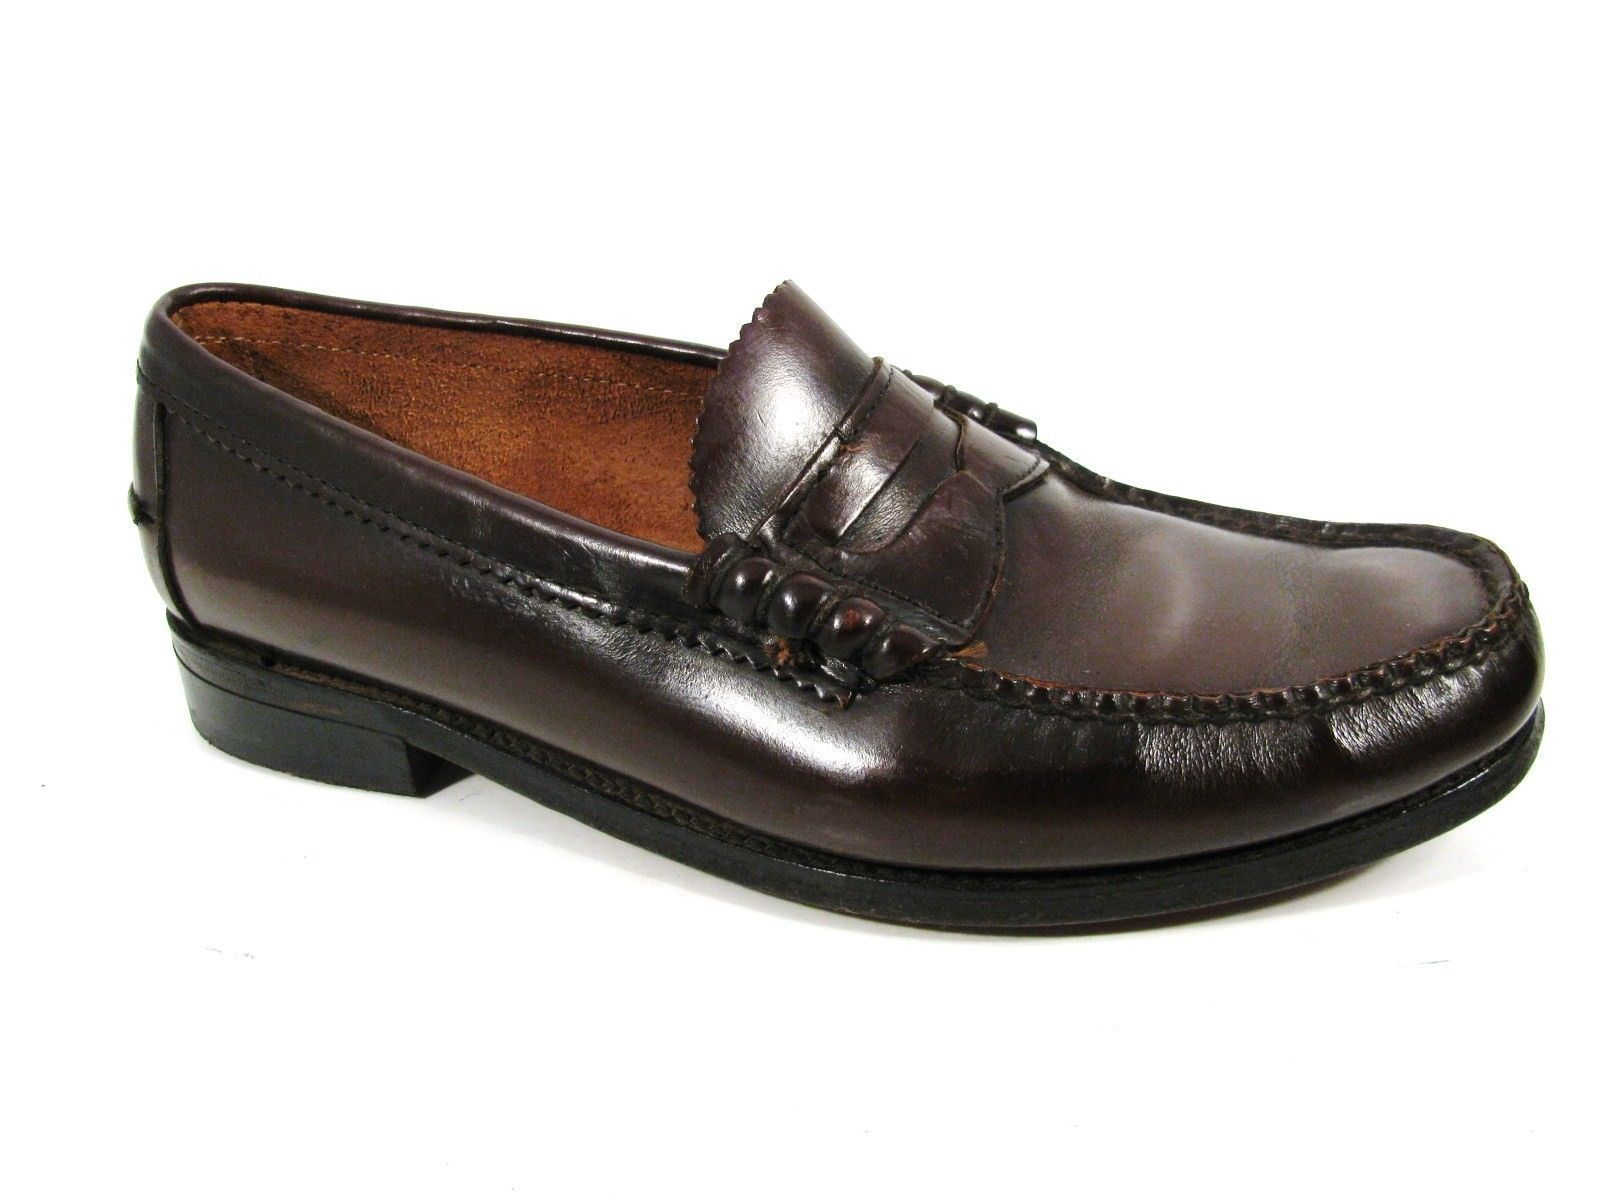 s loafers shoes burgundy made in usa leather